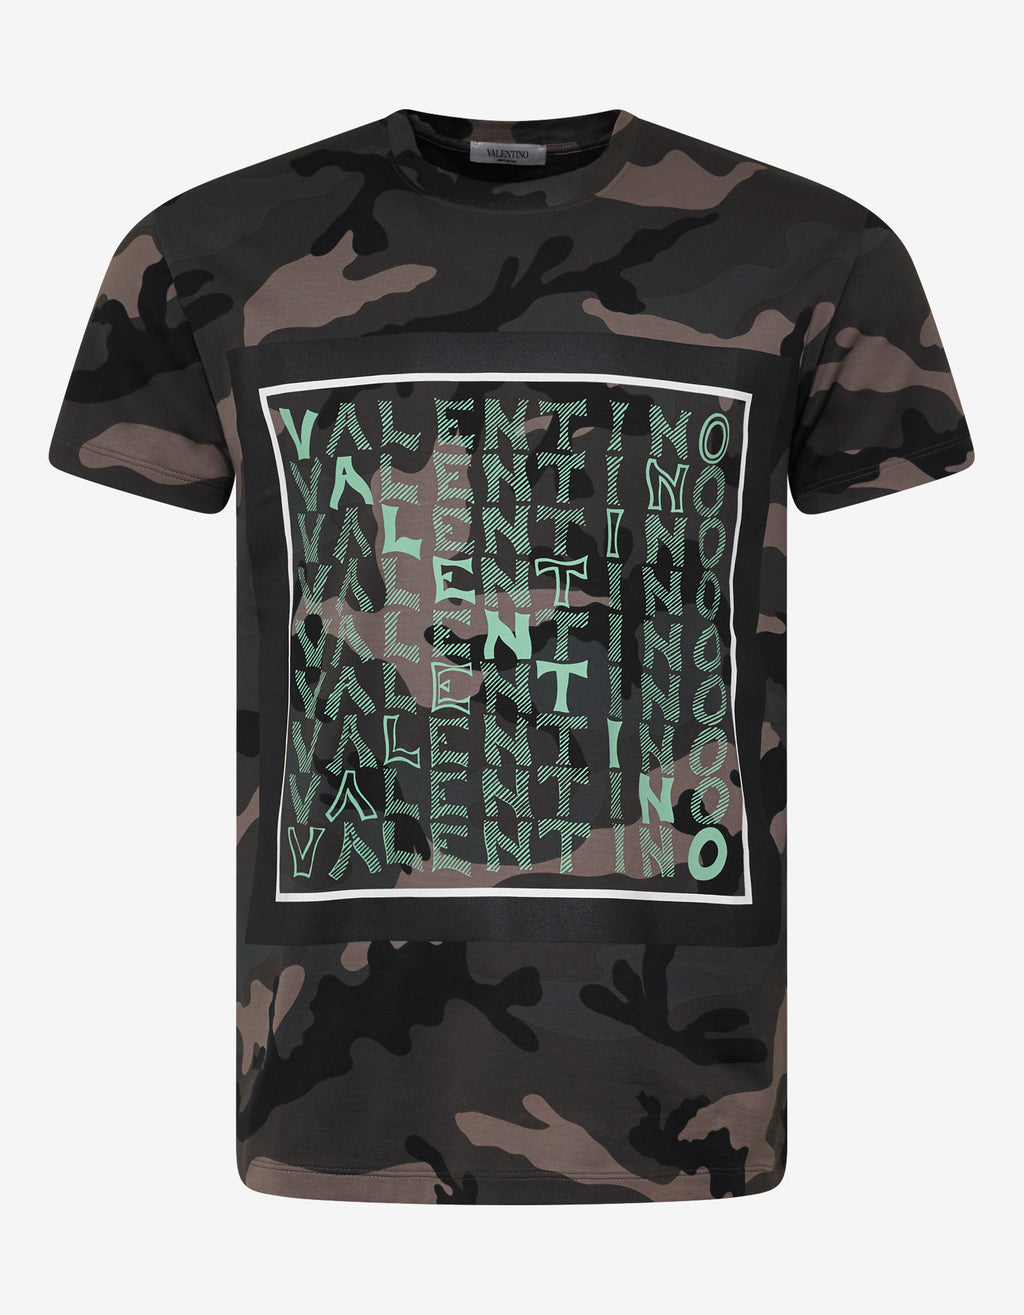 Green Camo V For Valentino T-Shirt